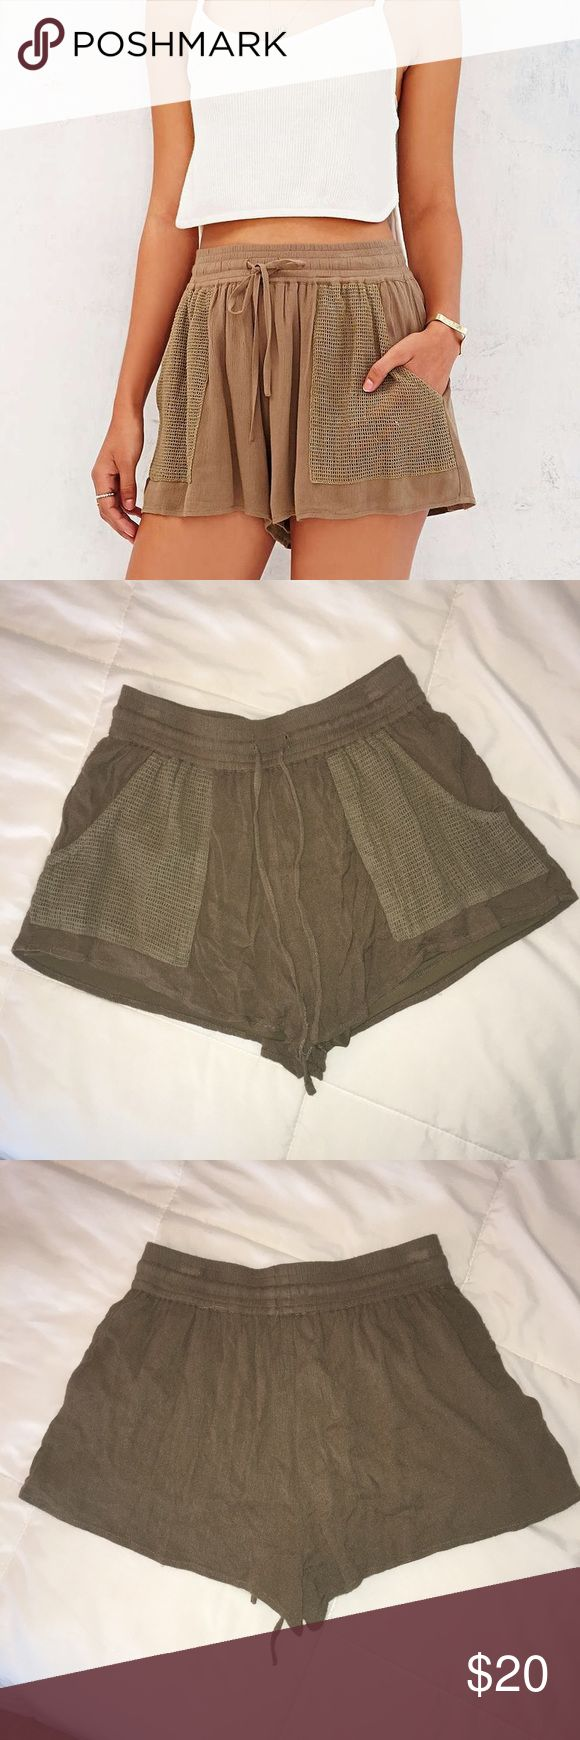 Band of Gypsies Army Green Shorts From Urban Outfitters! Only worn a few times! So cute. Size is XS but I'm a medium and they fit me. Marked as such. There's also an inner lining (pictured). Urban Outfitters Shorts